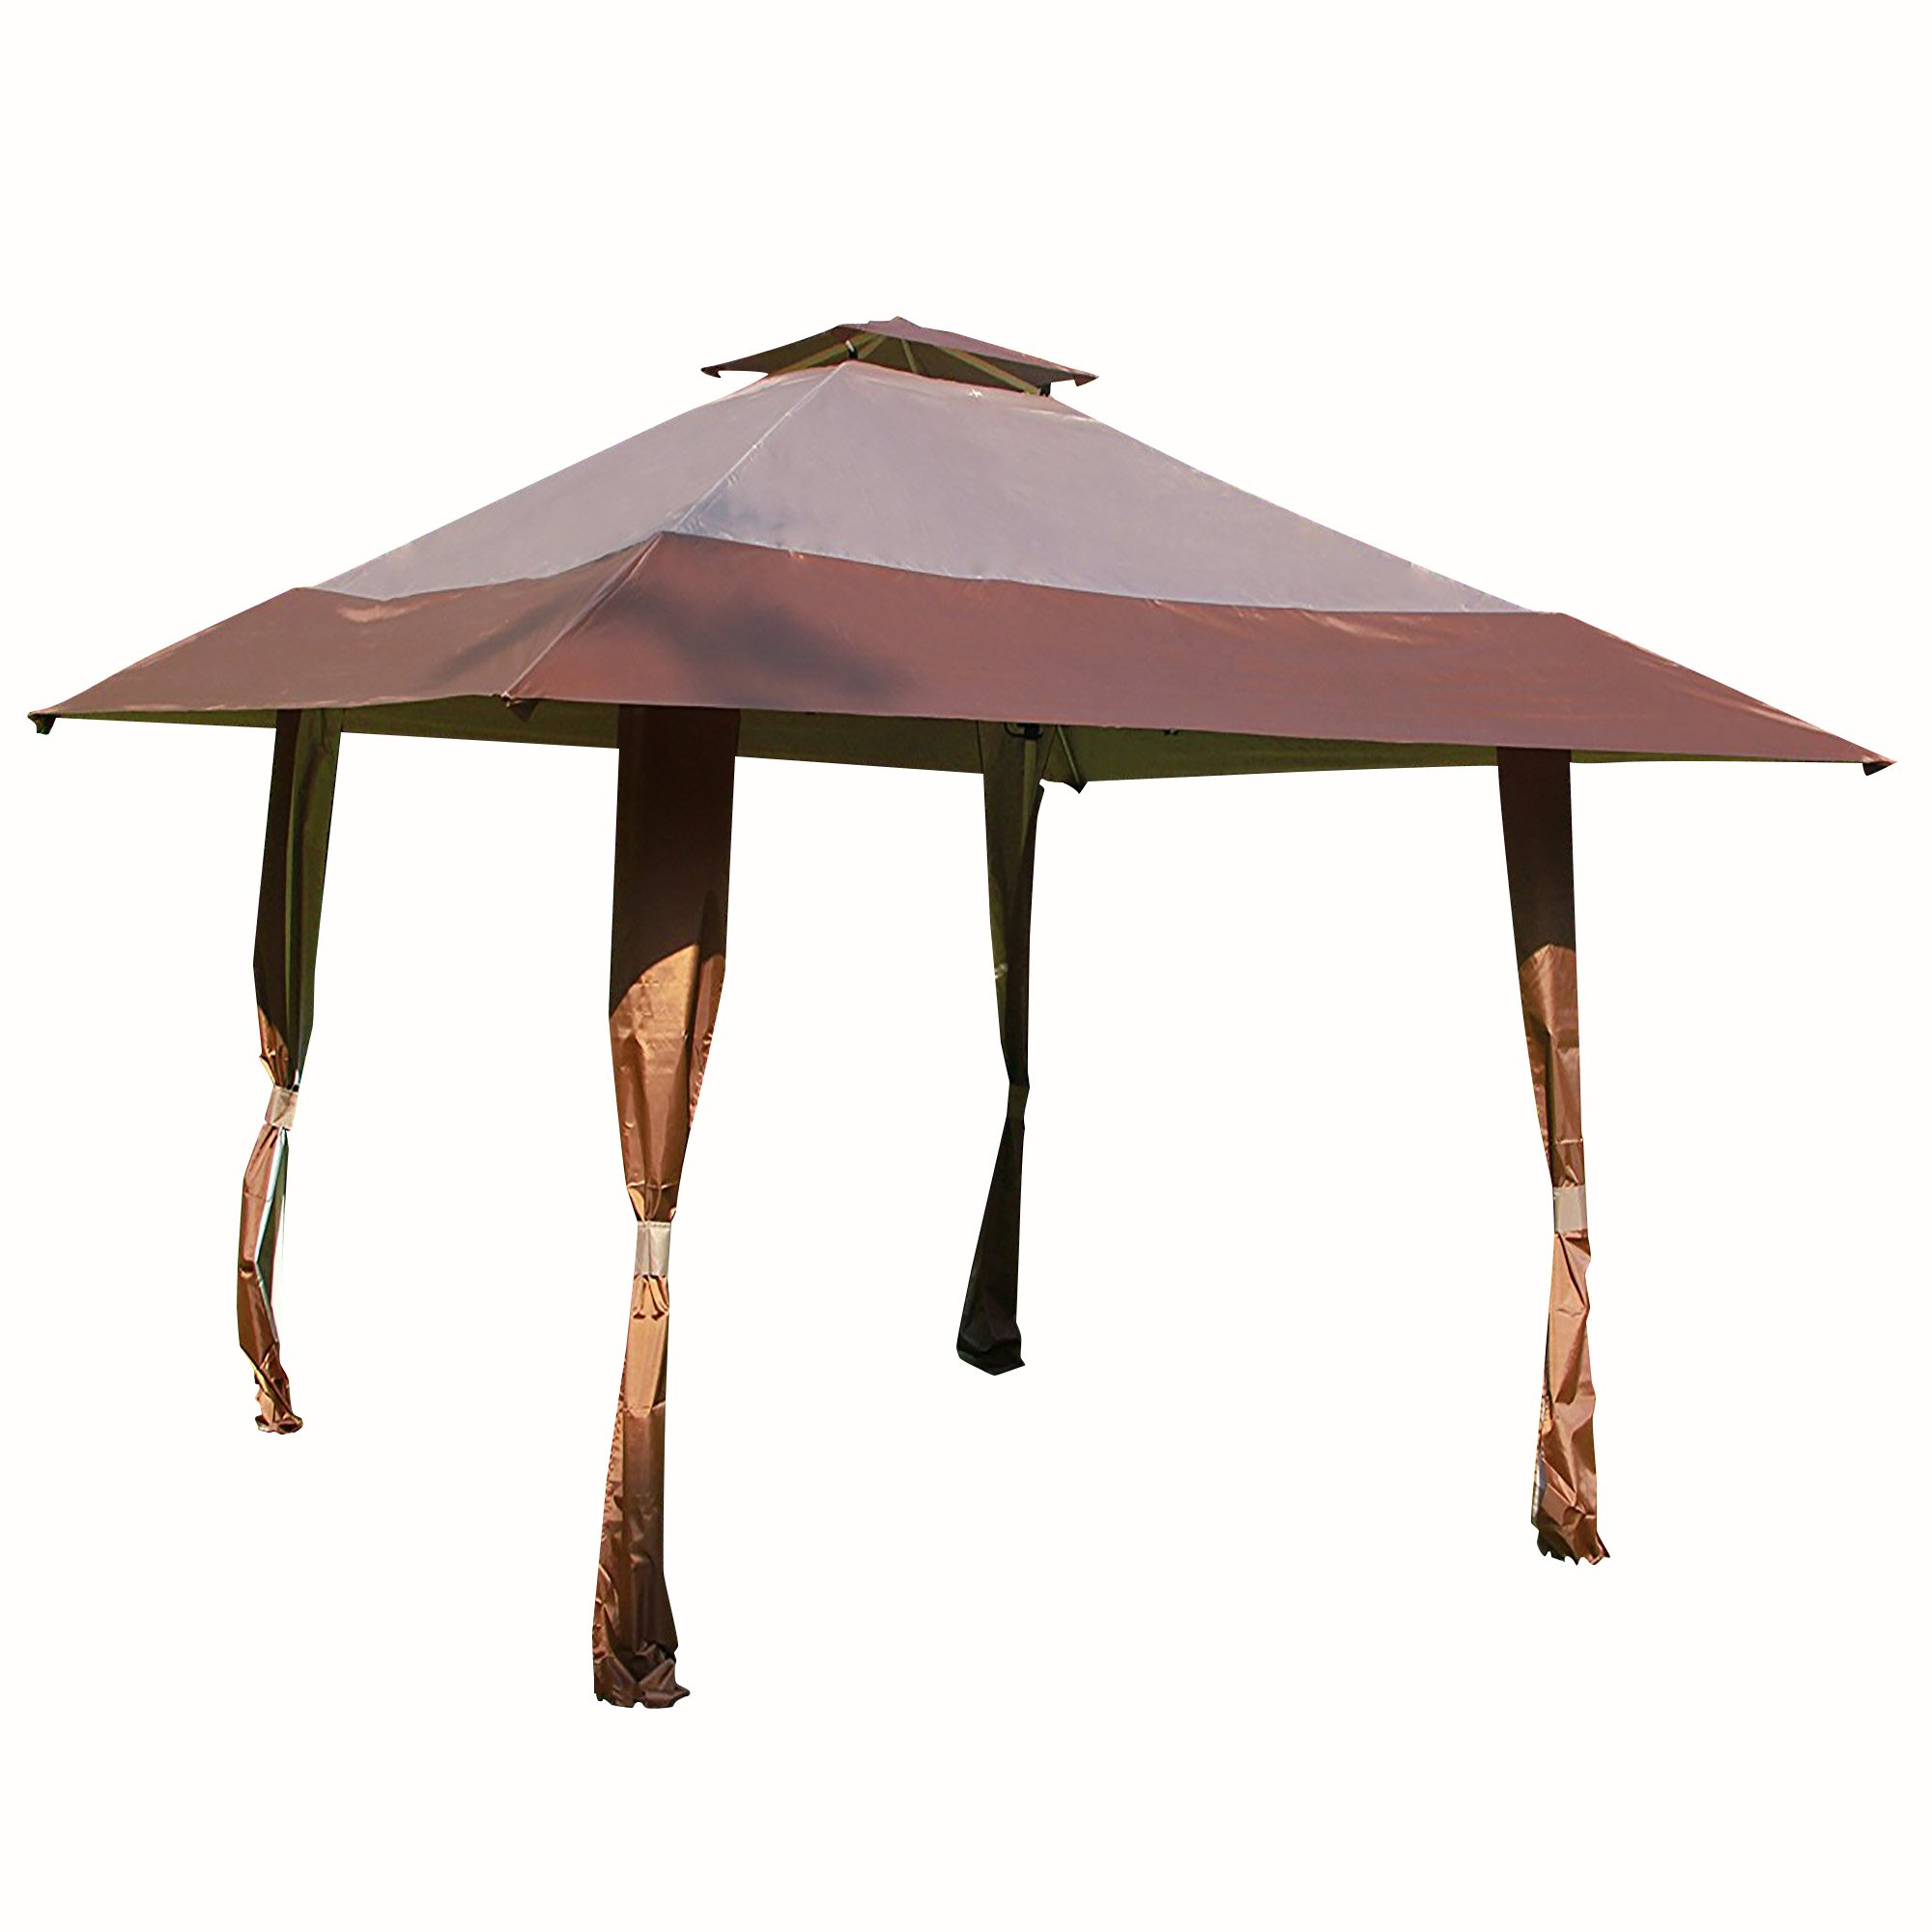 Cloud Mountain 13' x 13' Pop Up Canopy Outdoor Yard Patio Double Roof Easy Set Up Canopy Tent for Party Event, Brown Tan